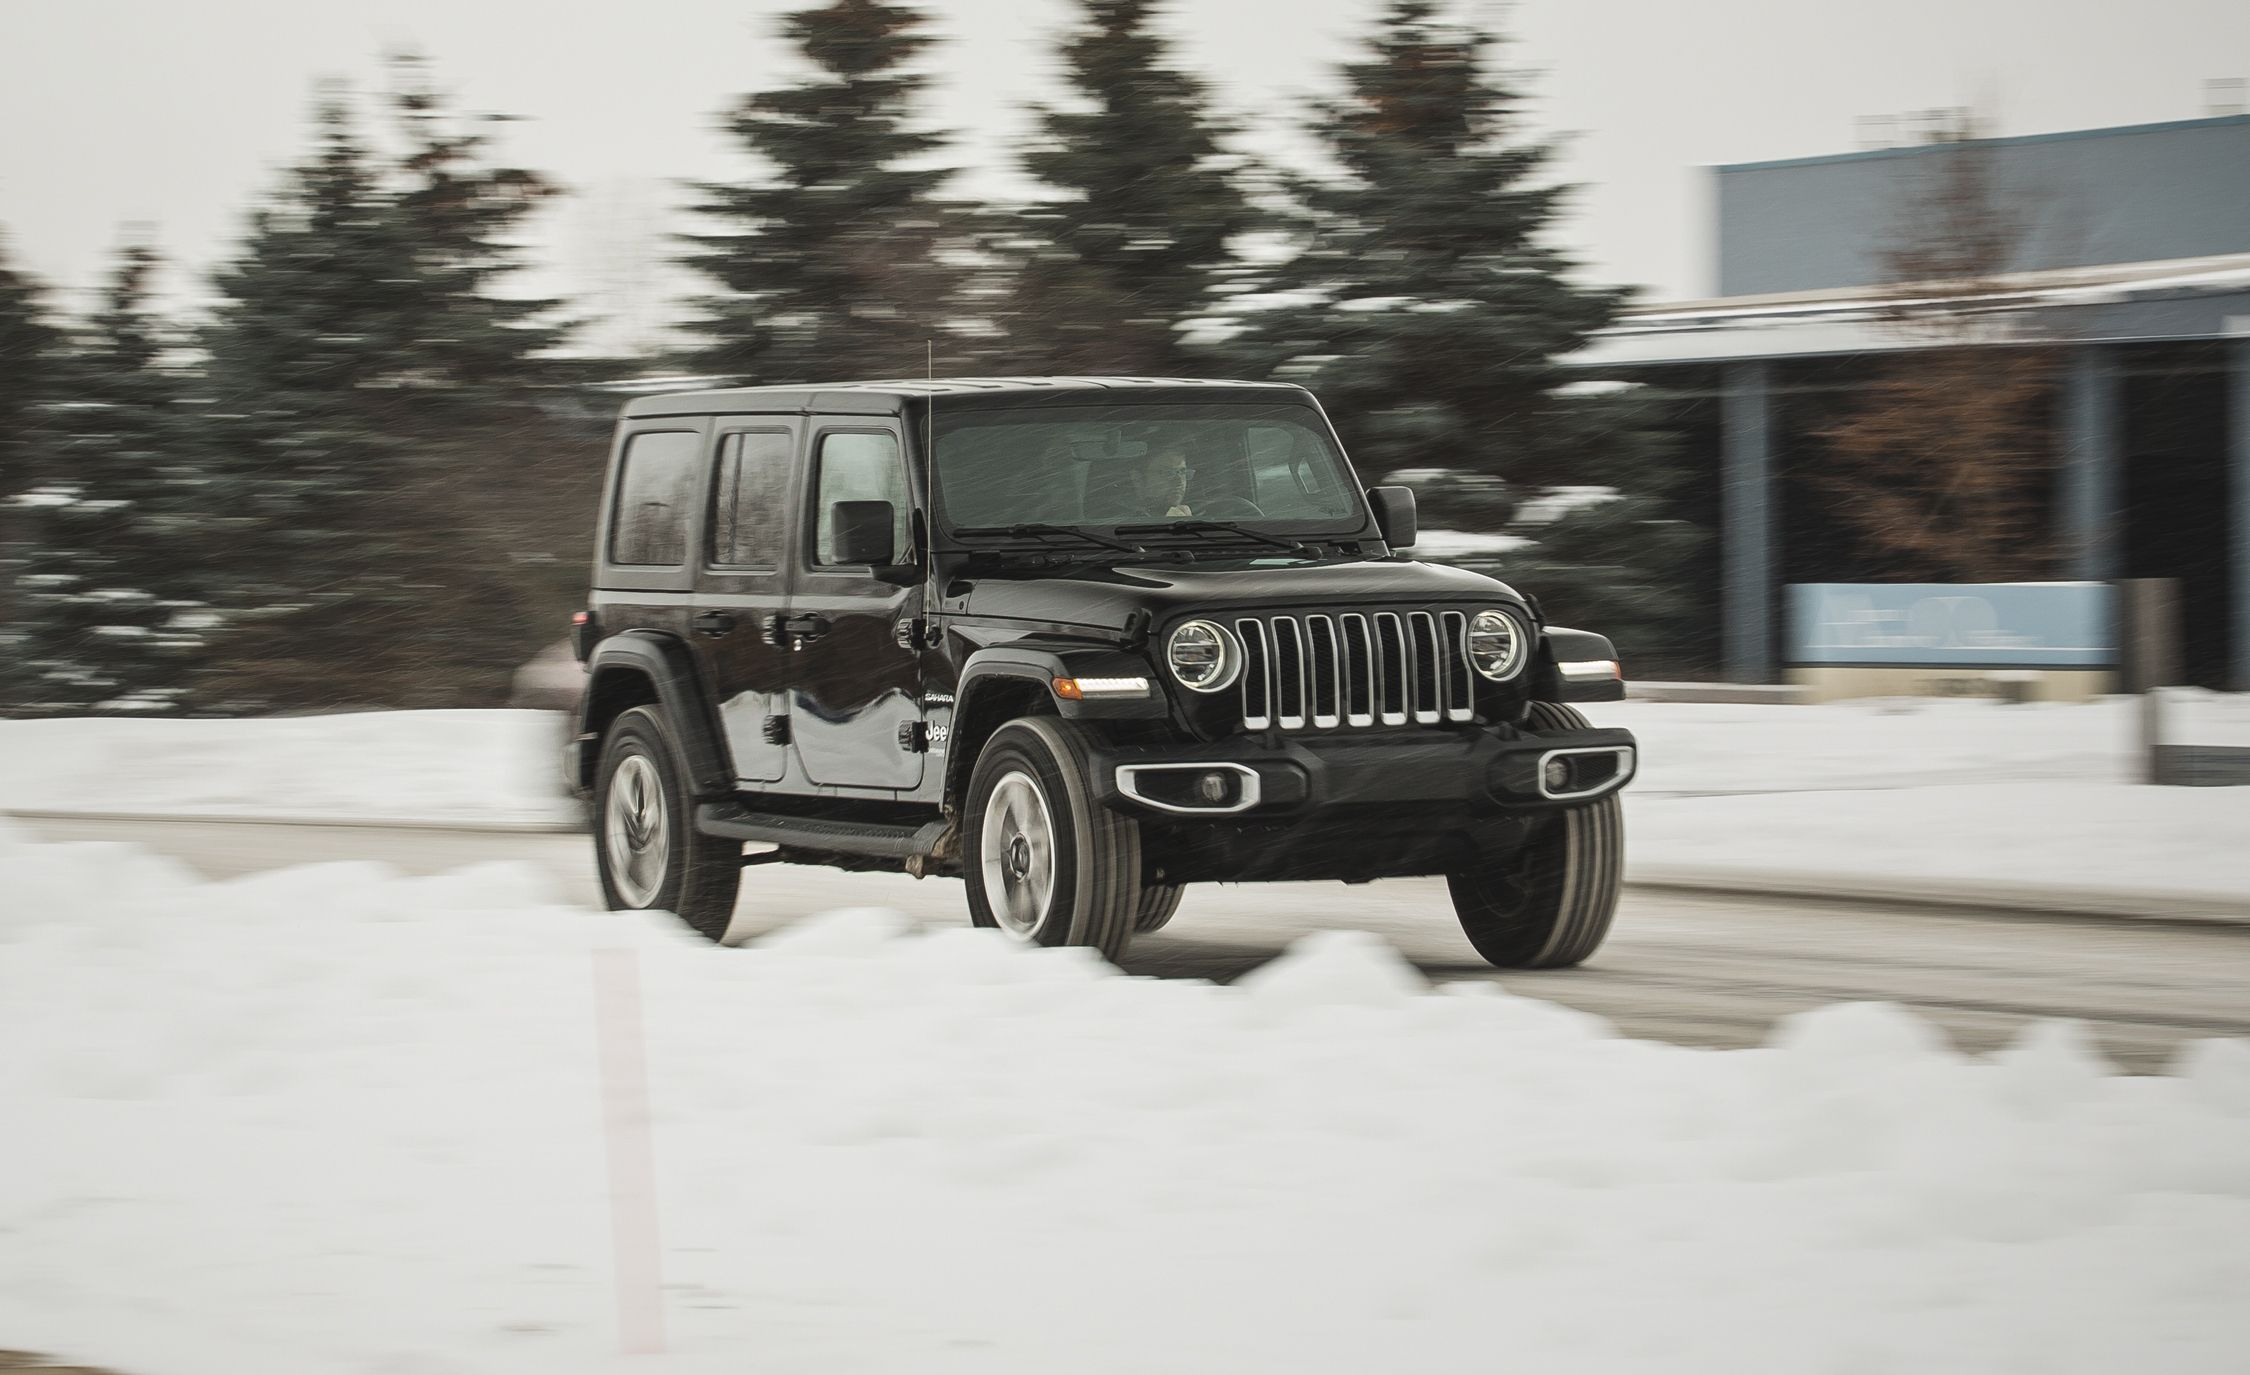 2018 Jeep Wrangler Unlimited V 6 AWD Automatic